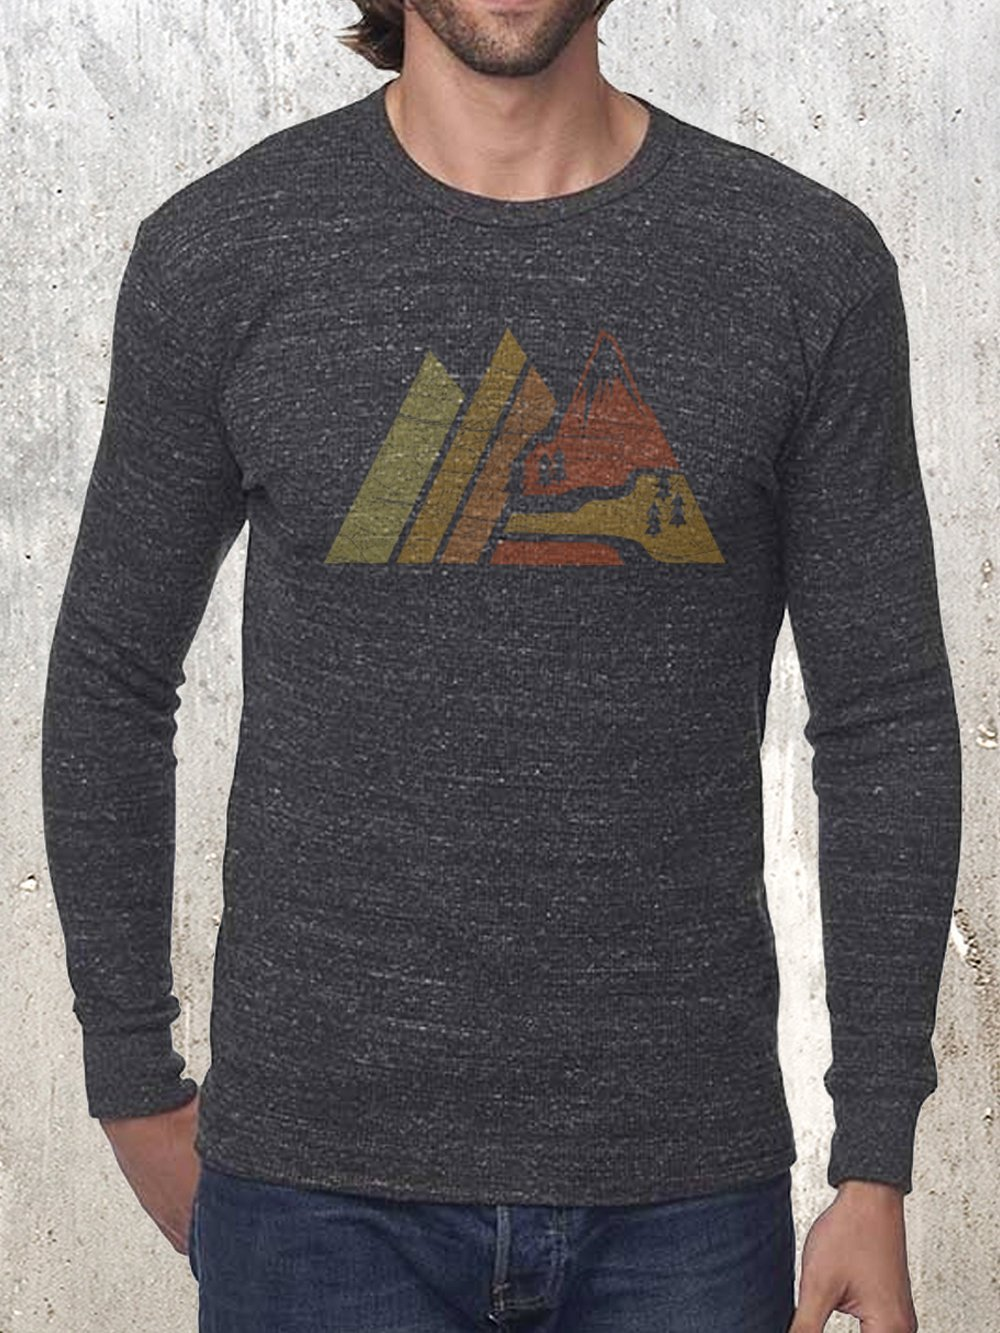 Retro Mountain Men's Heavyweight Tri-Blend Thermal - Made in the US - Organic Cotton and Recycled Fabrics